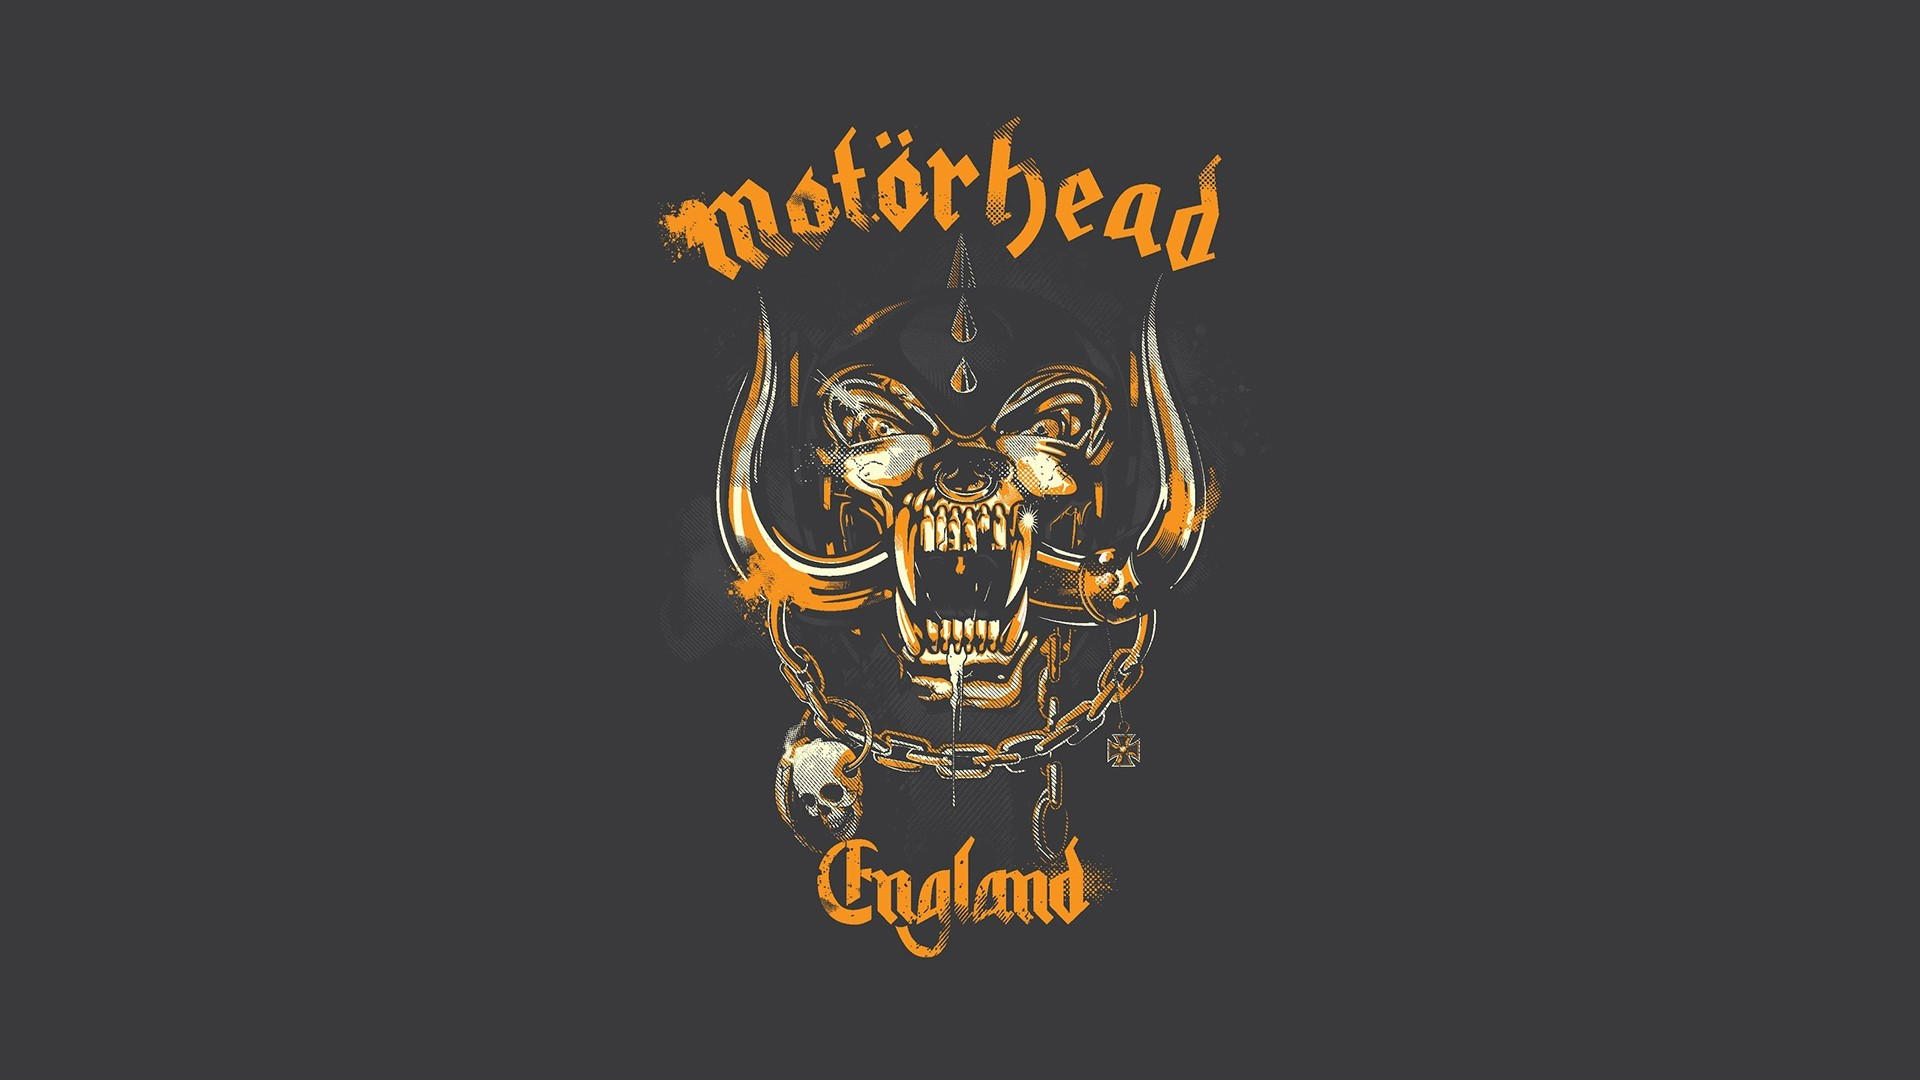 Yellow tone Motorhead logo hd wallpaper background – HD Wallpapers